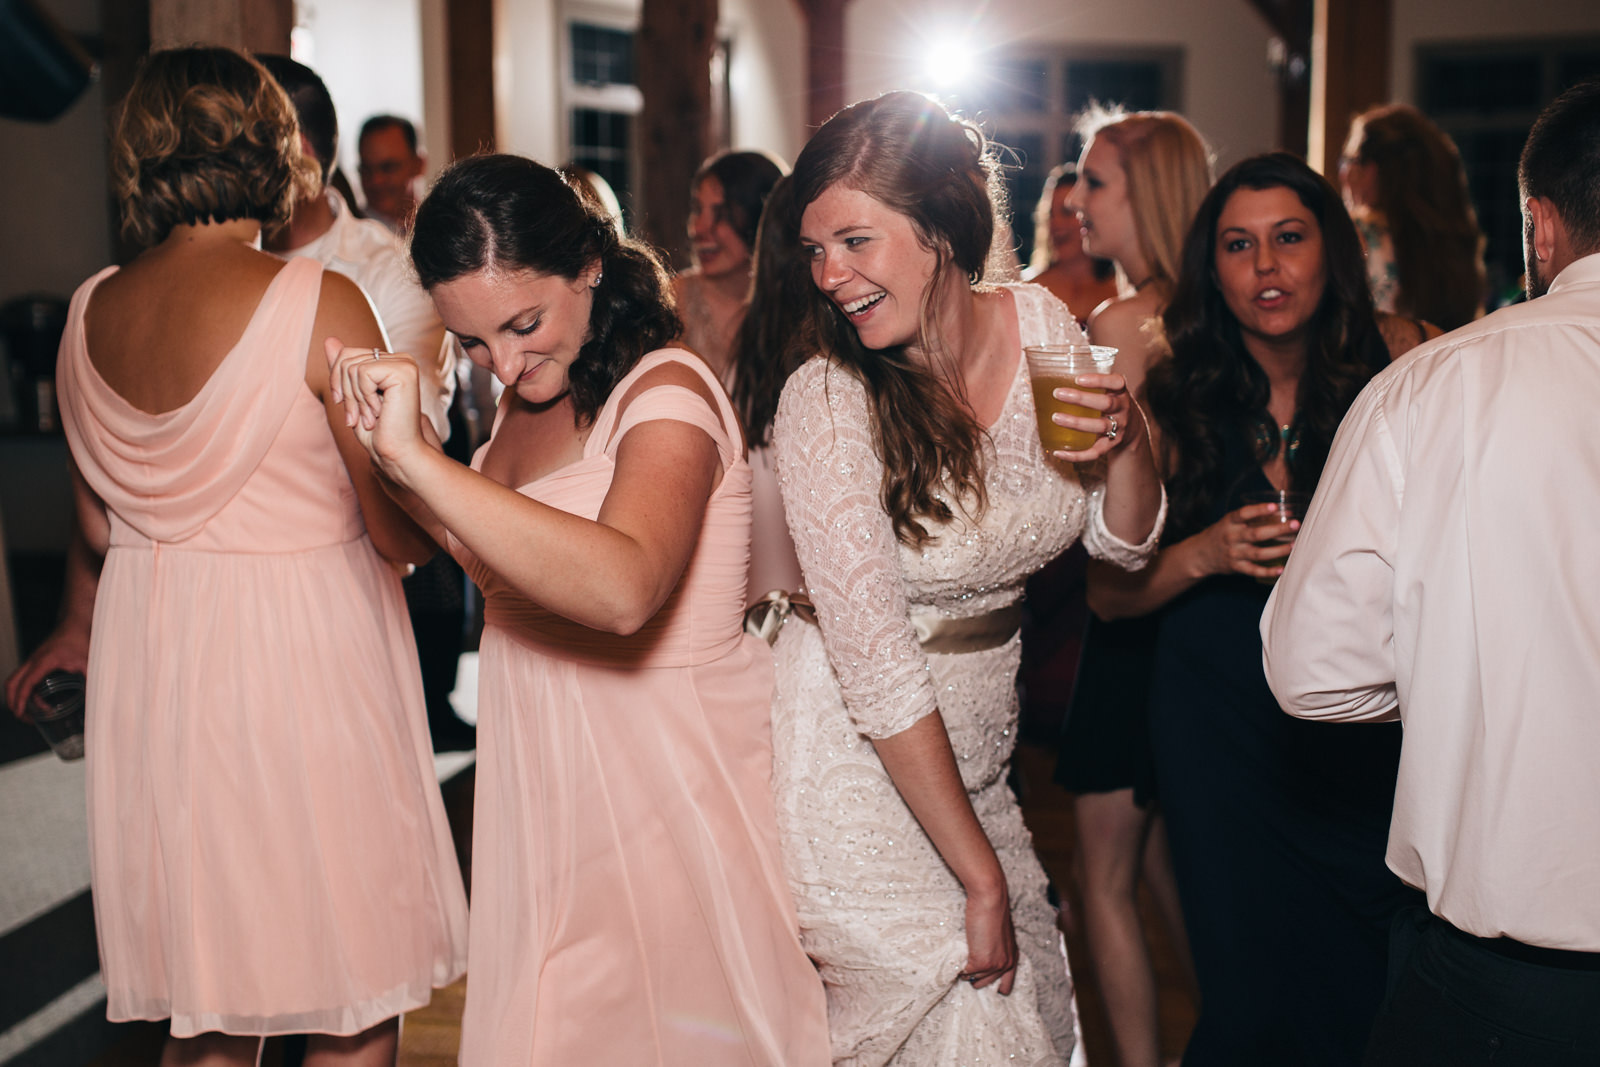 Bride dances with her best friend at wedding reception.